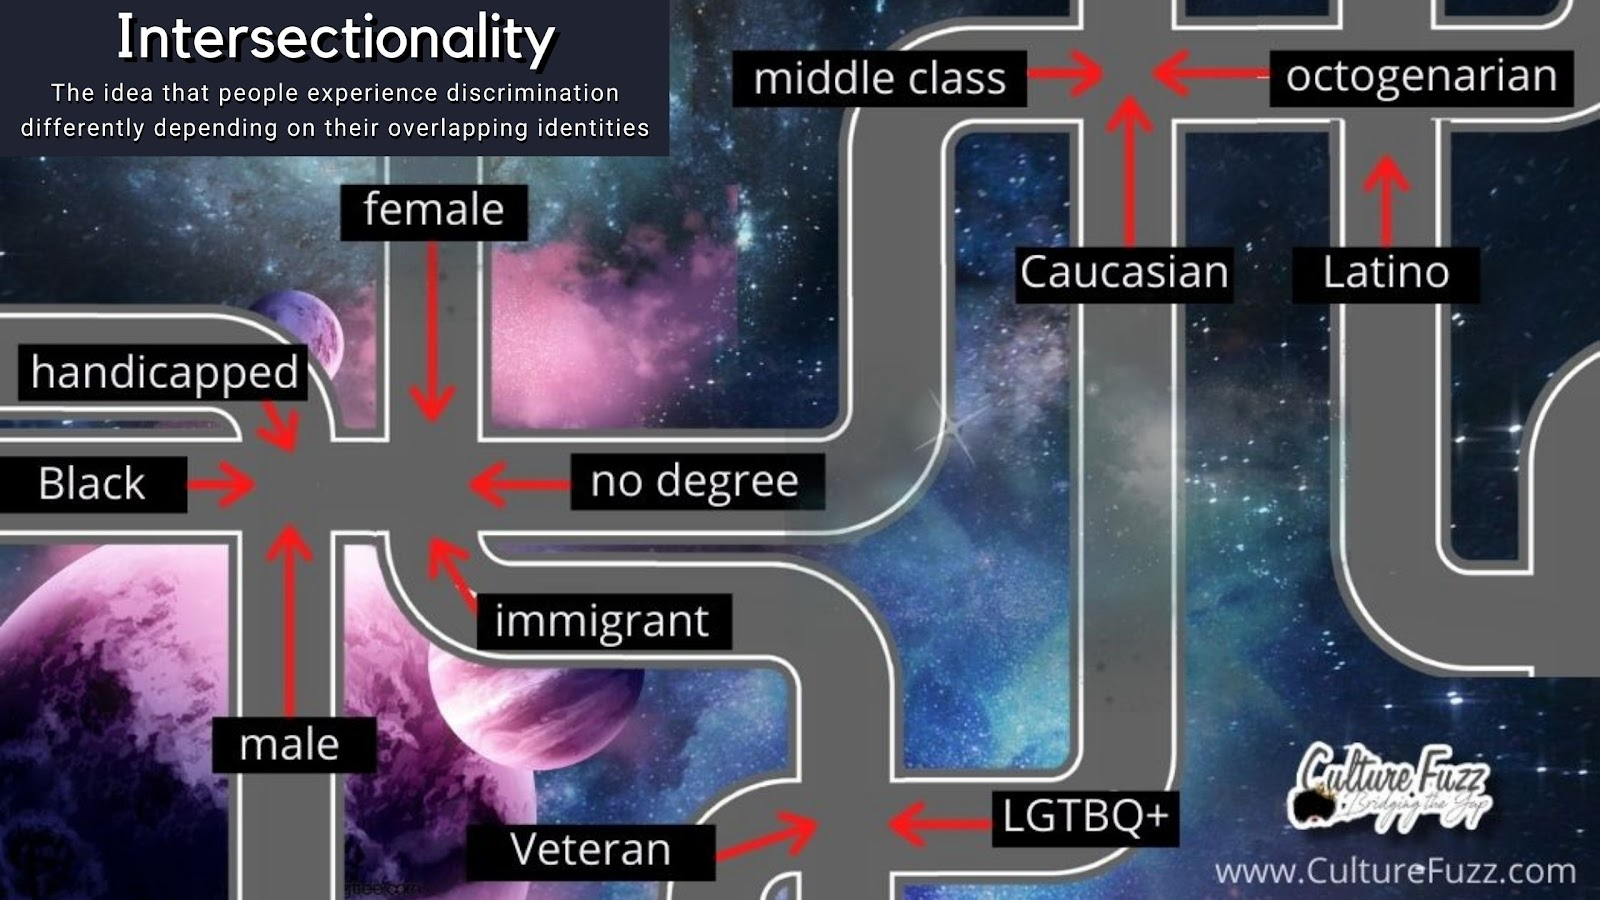 culture fuzz intersectionality